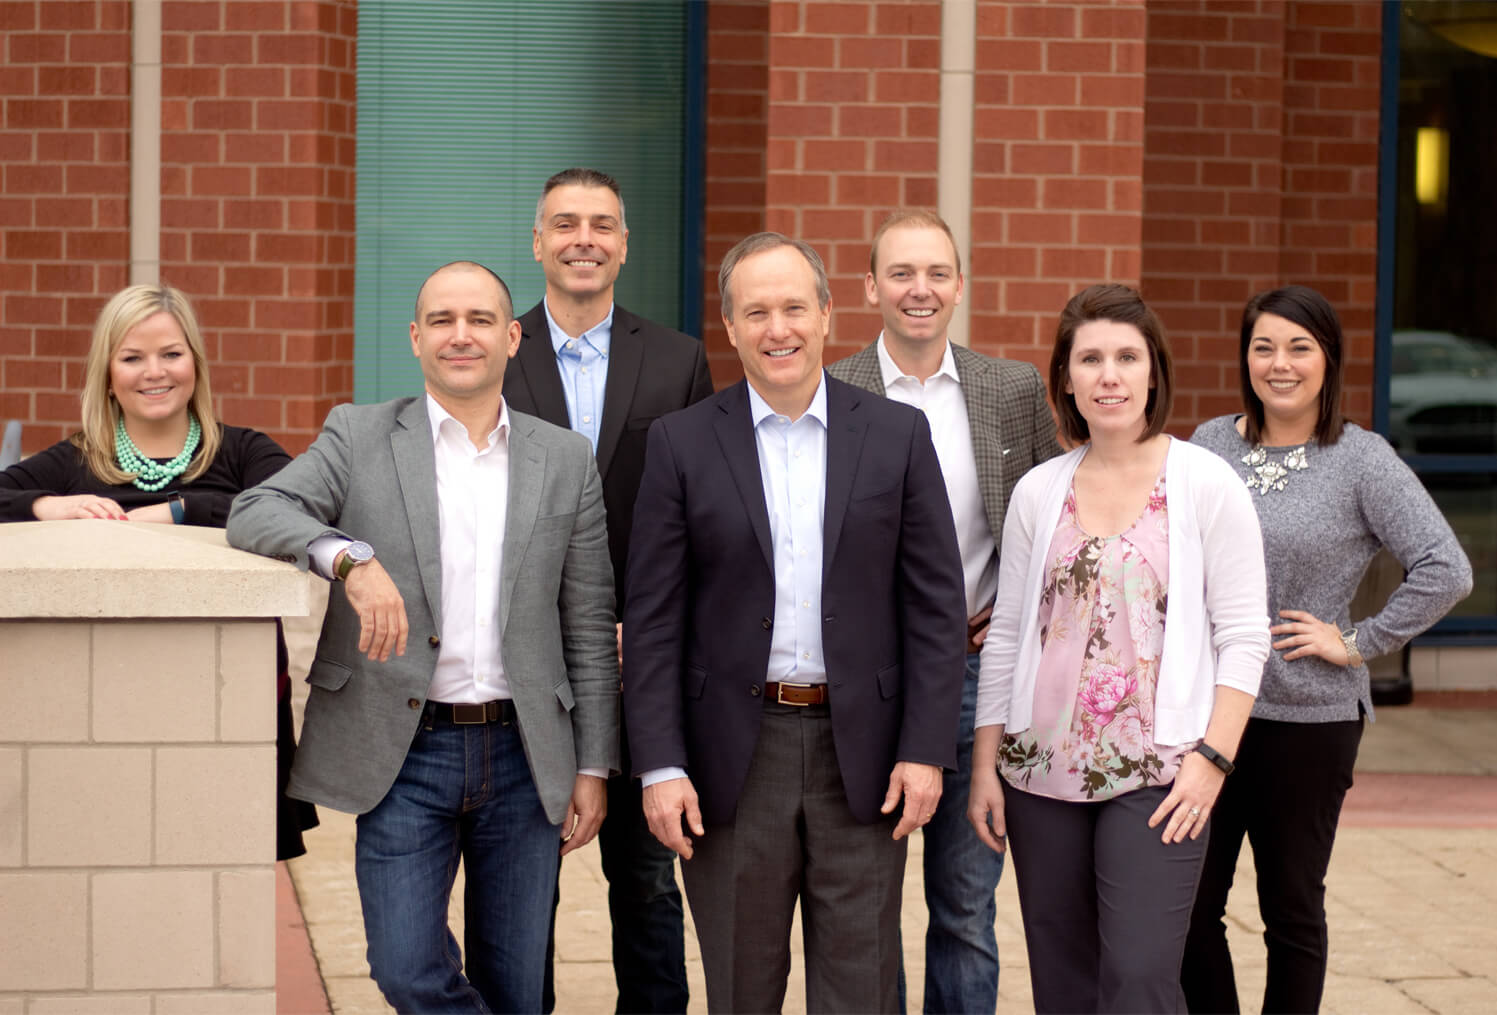 Barnes Young Wealth Management team photo